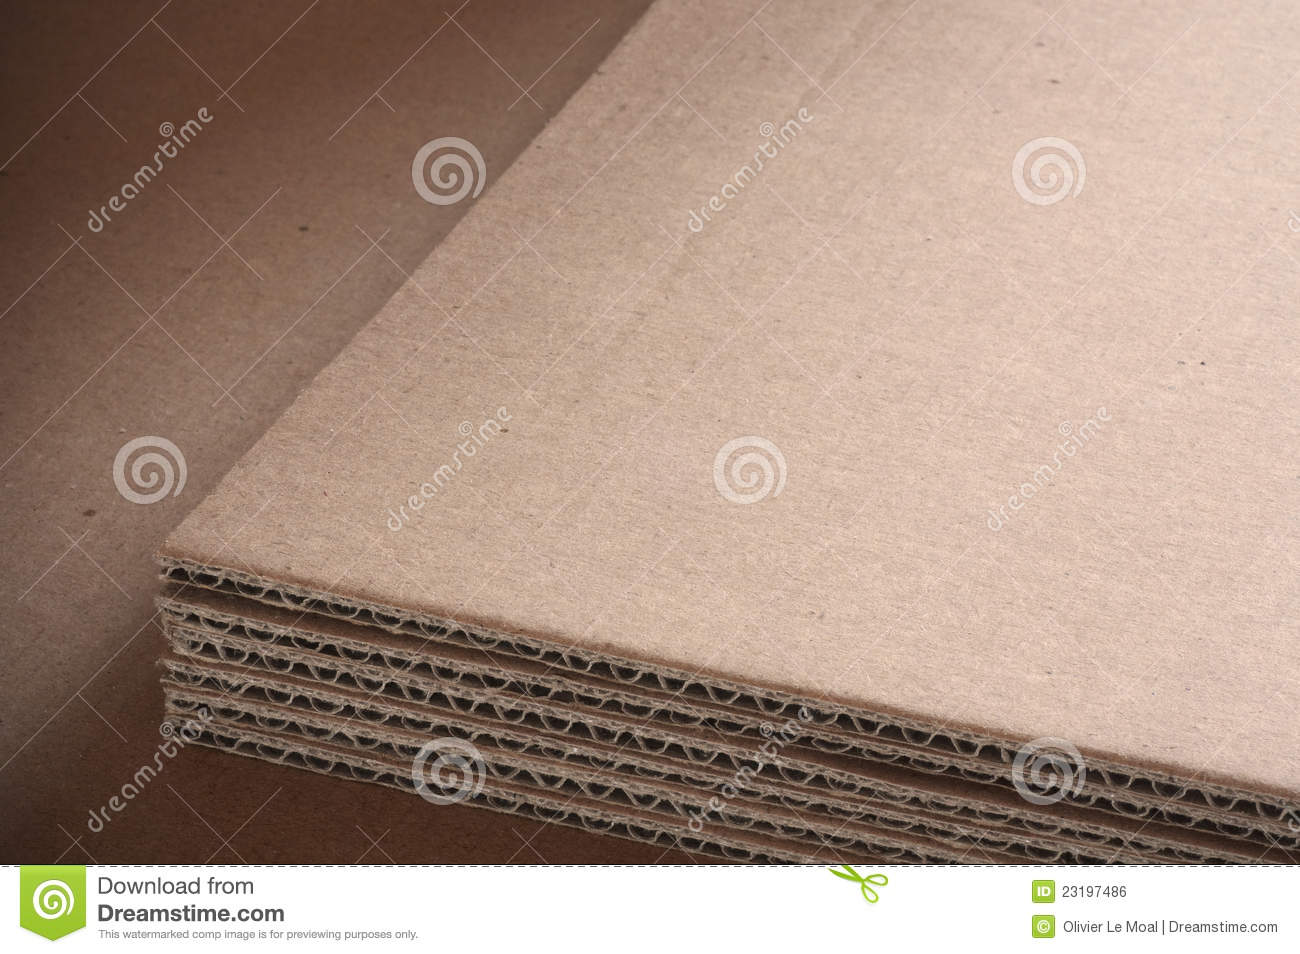 Corrugated Cardboard Sheets Background Royalty Free Stock